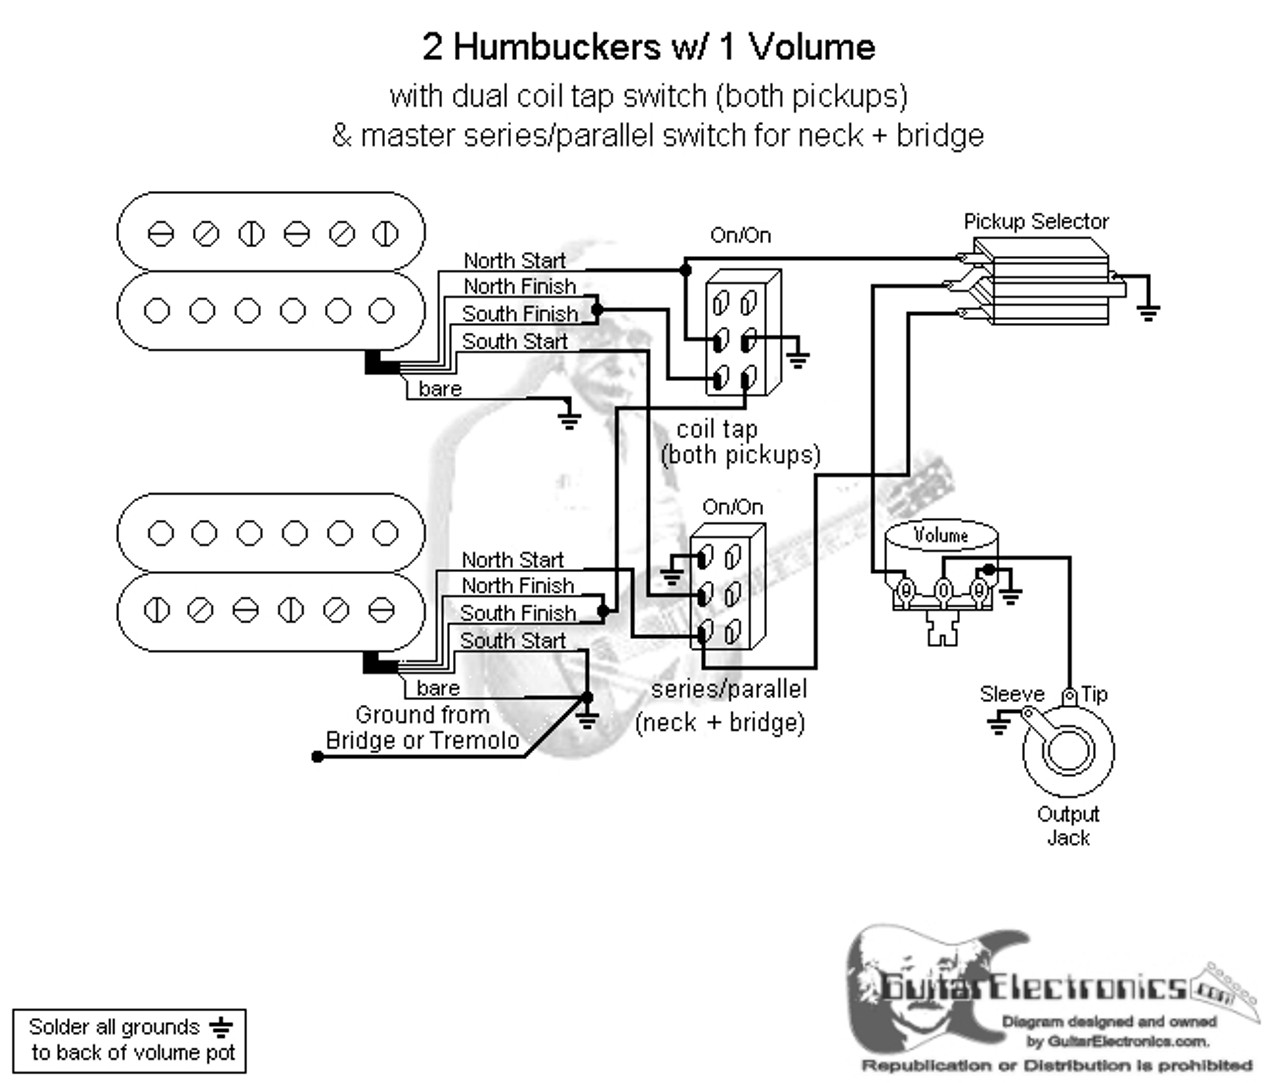 small resolution of split coil wiring for toggle switch diagram wiring diagram split coil wiring for toggle switch diagram